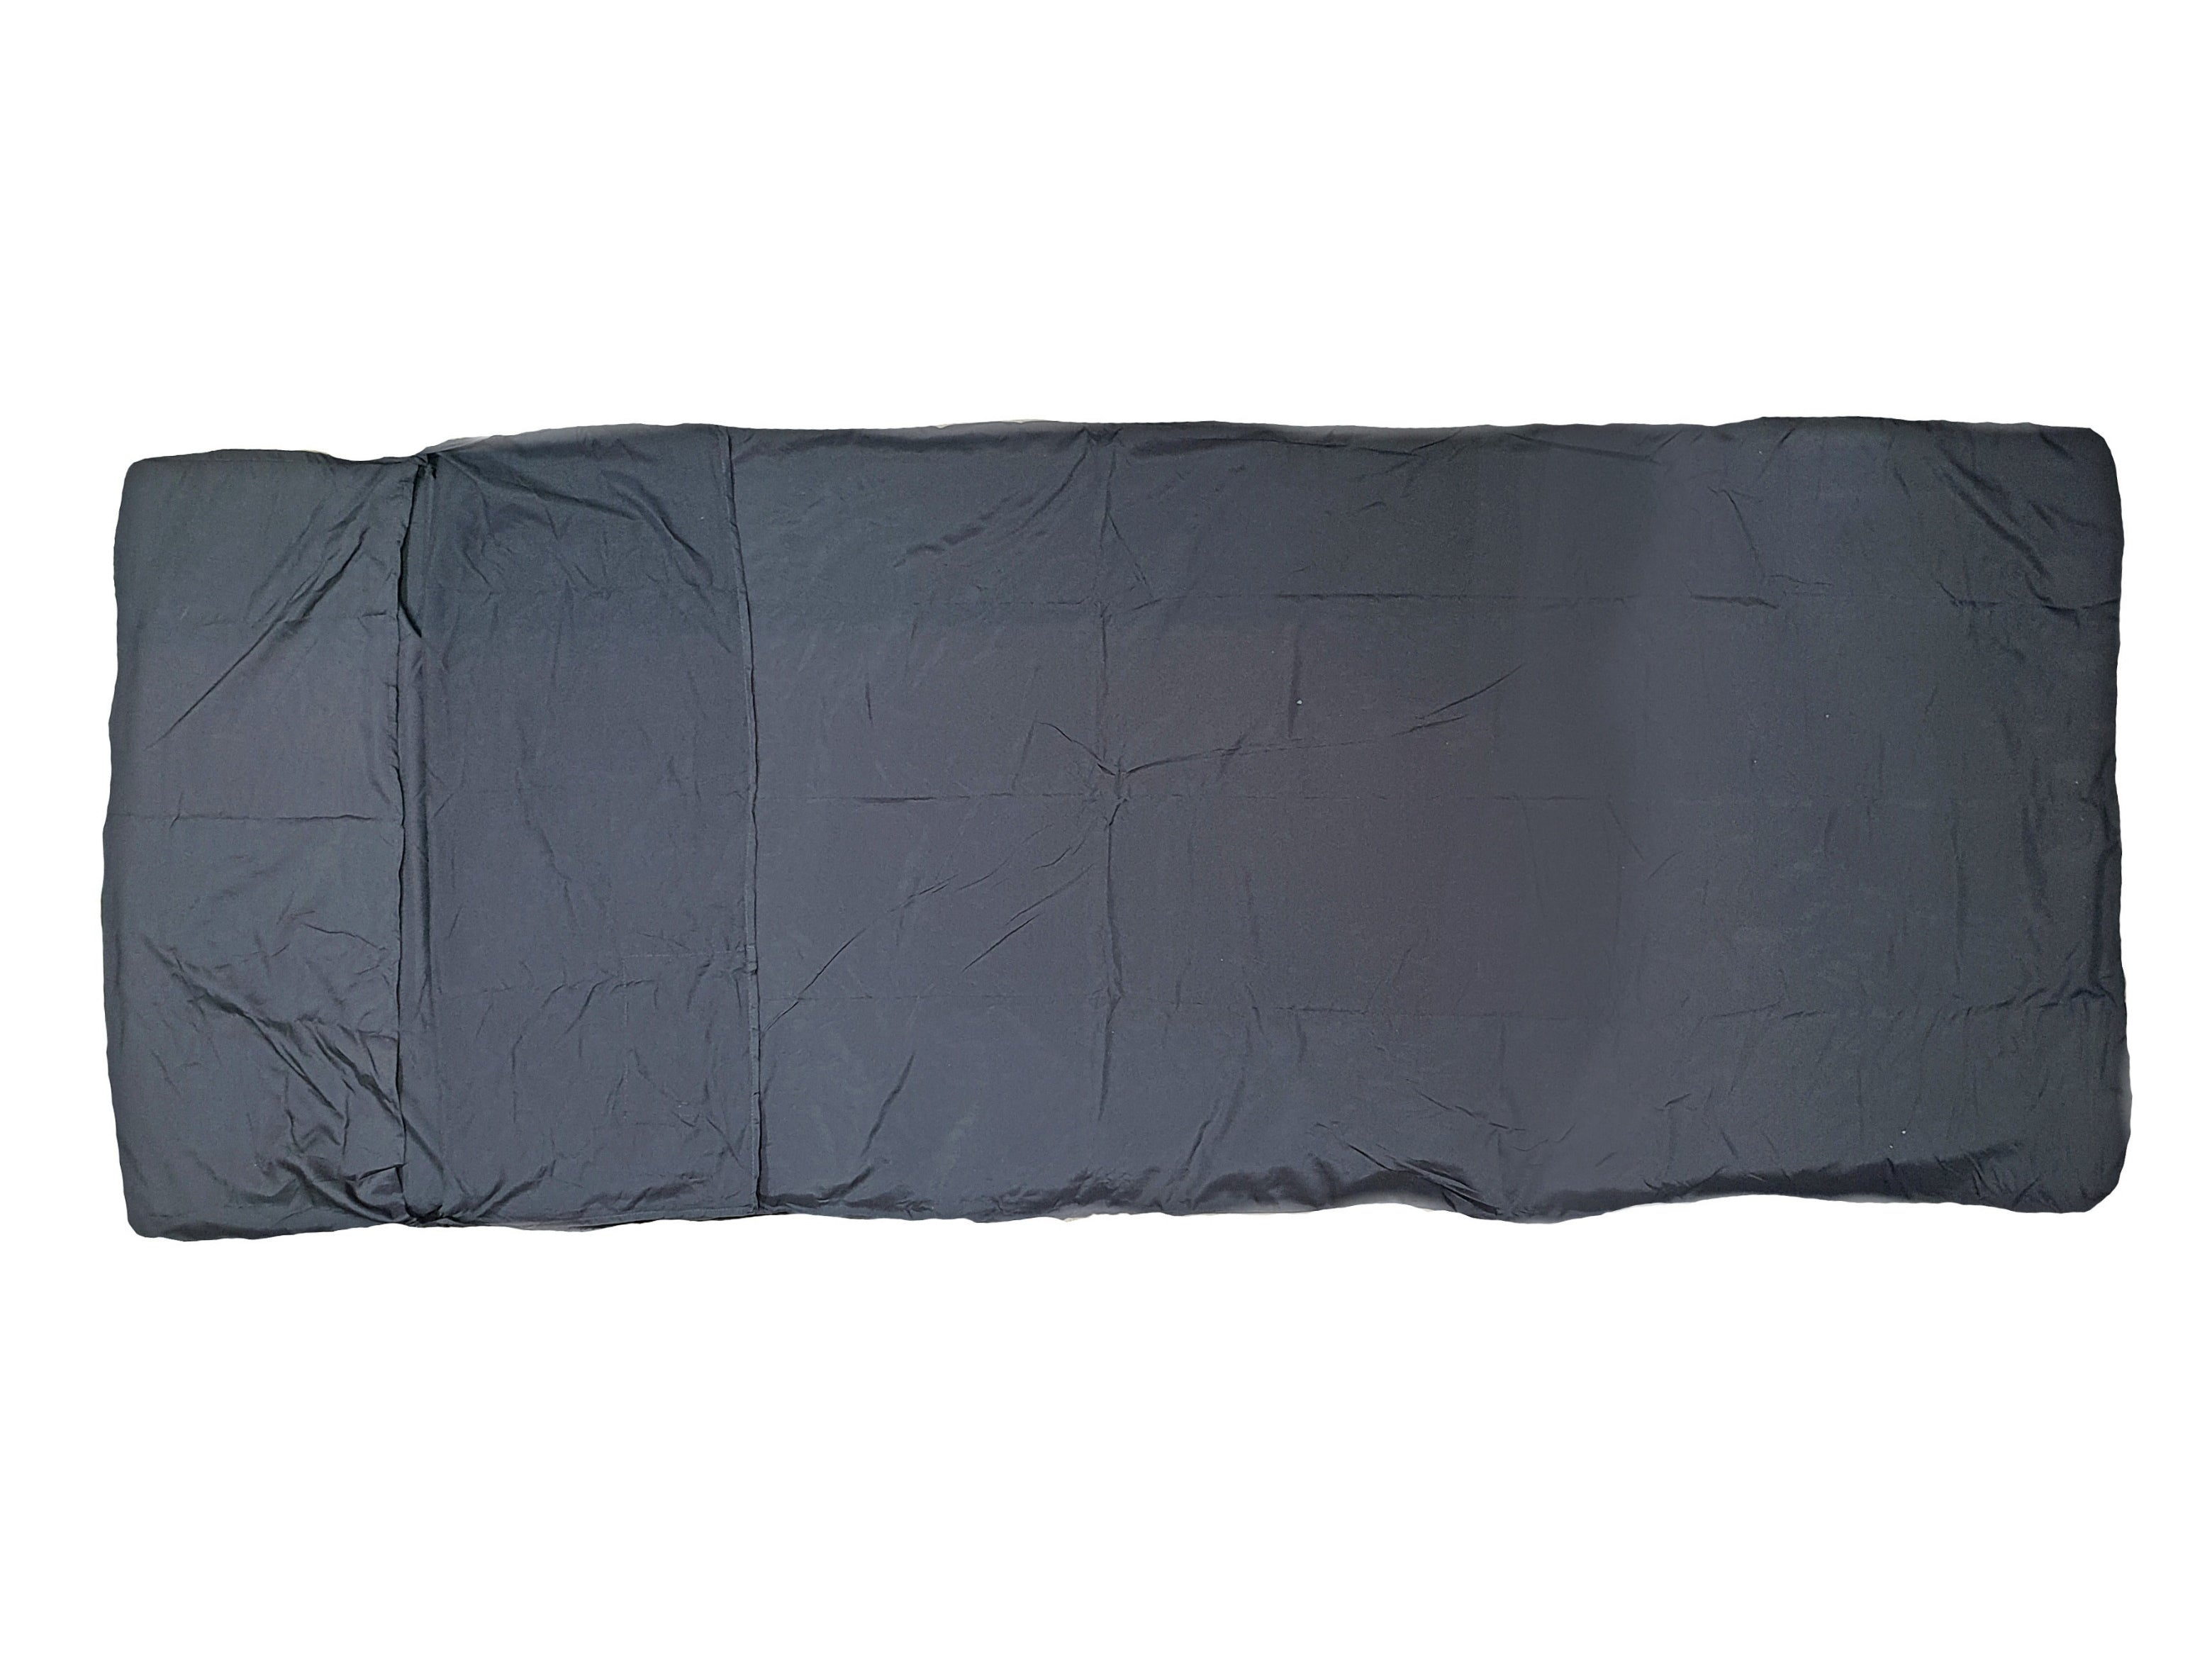 extra-large-comfy-travel-sleepingbag-liner-layed-out